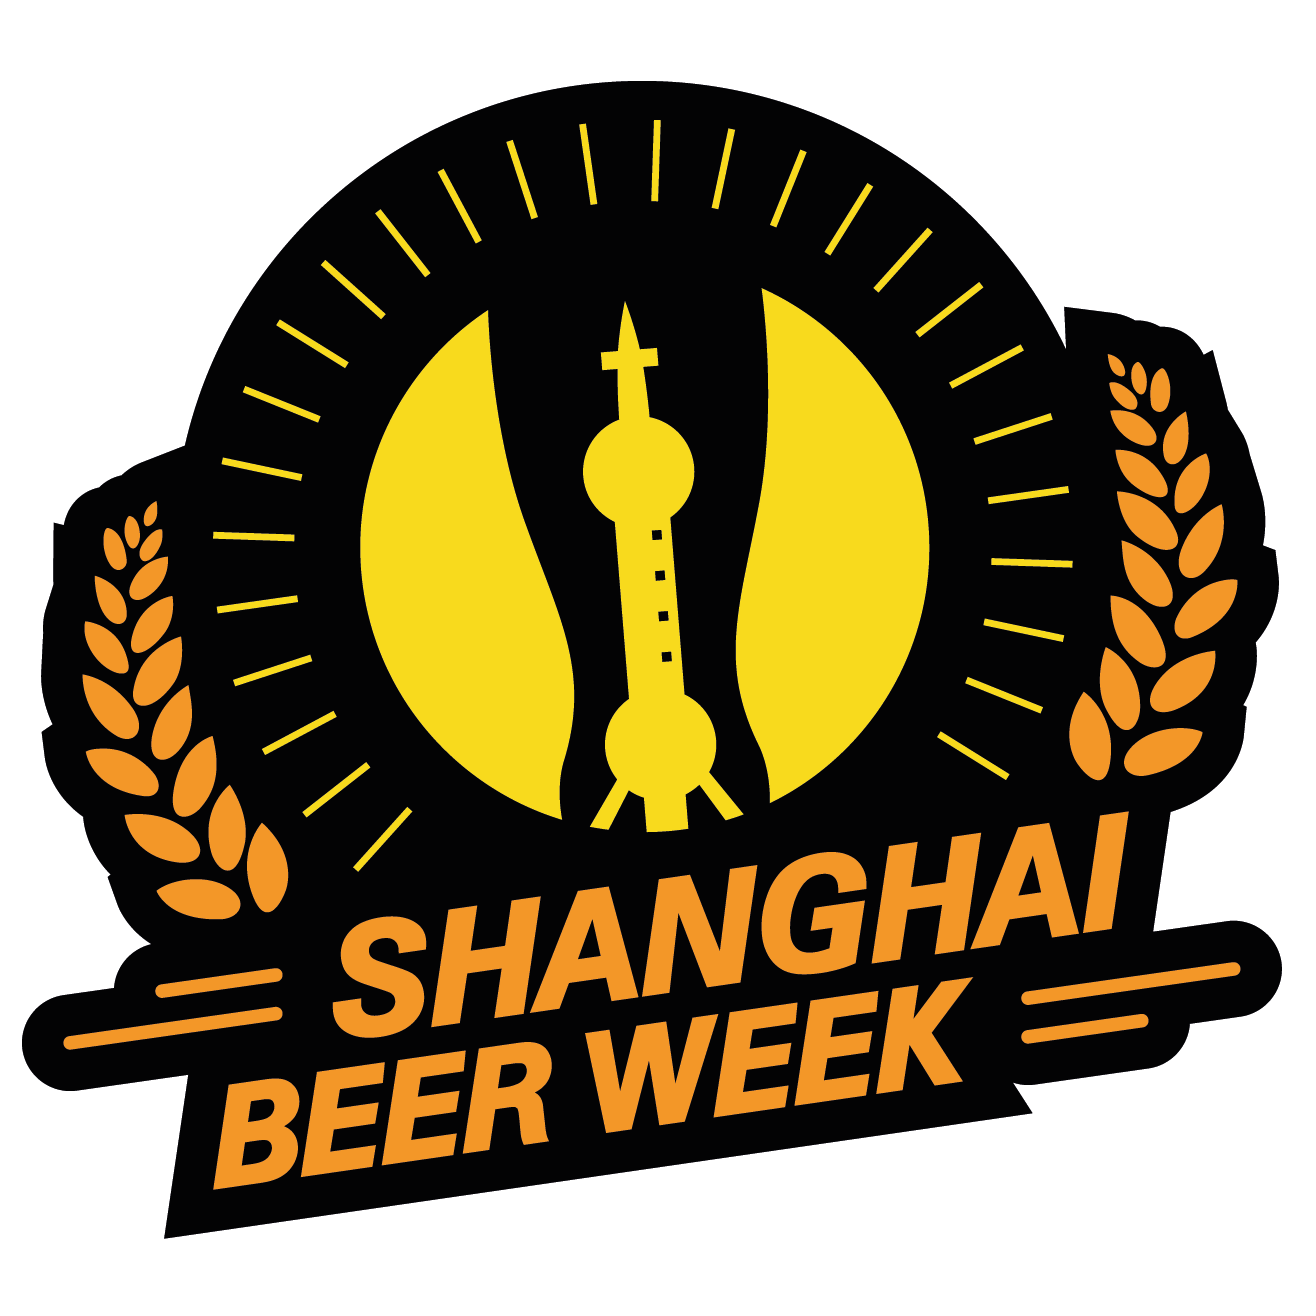 Shanghai Beer Week 2018